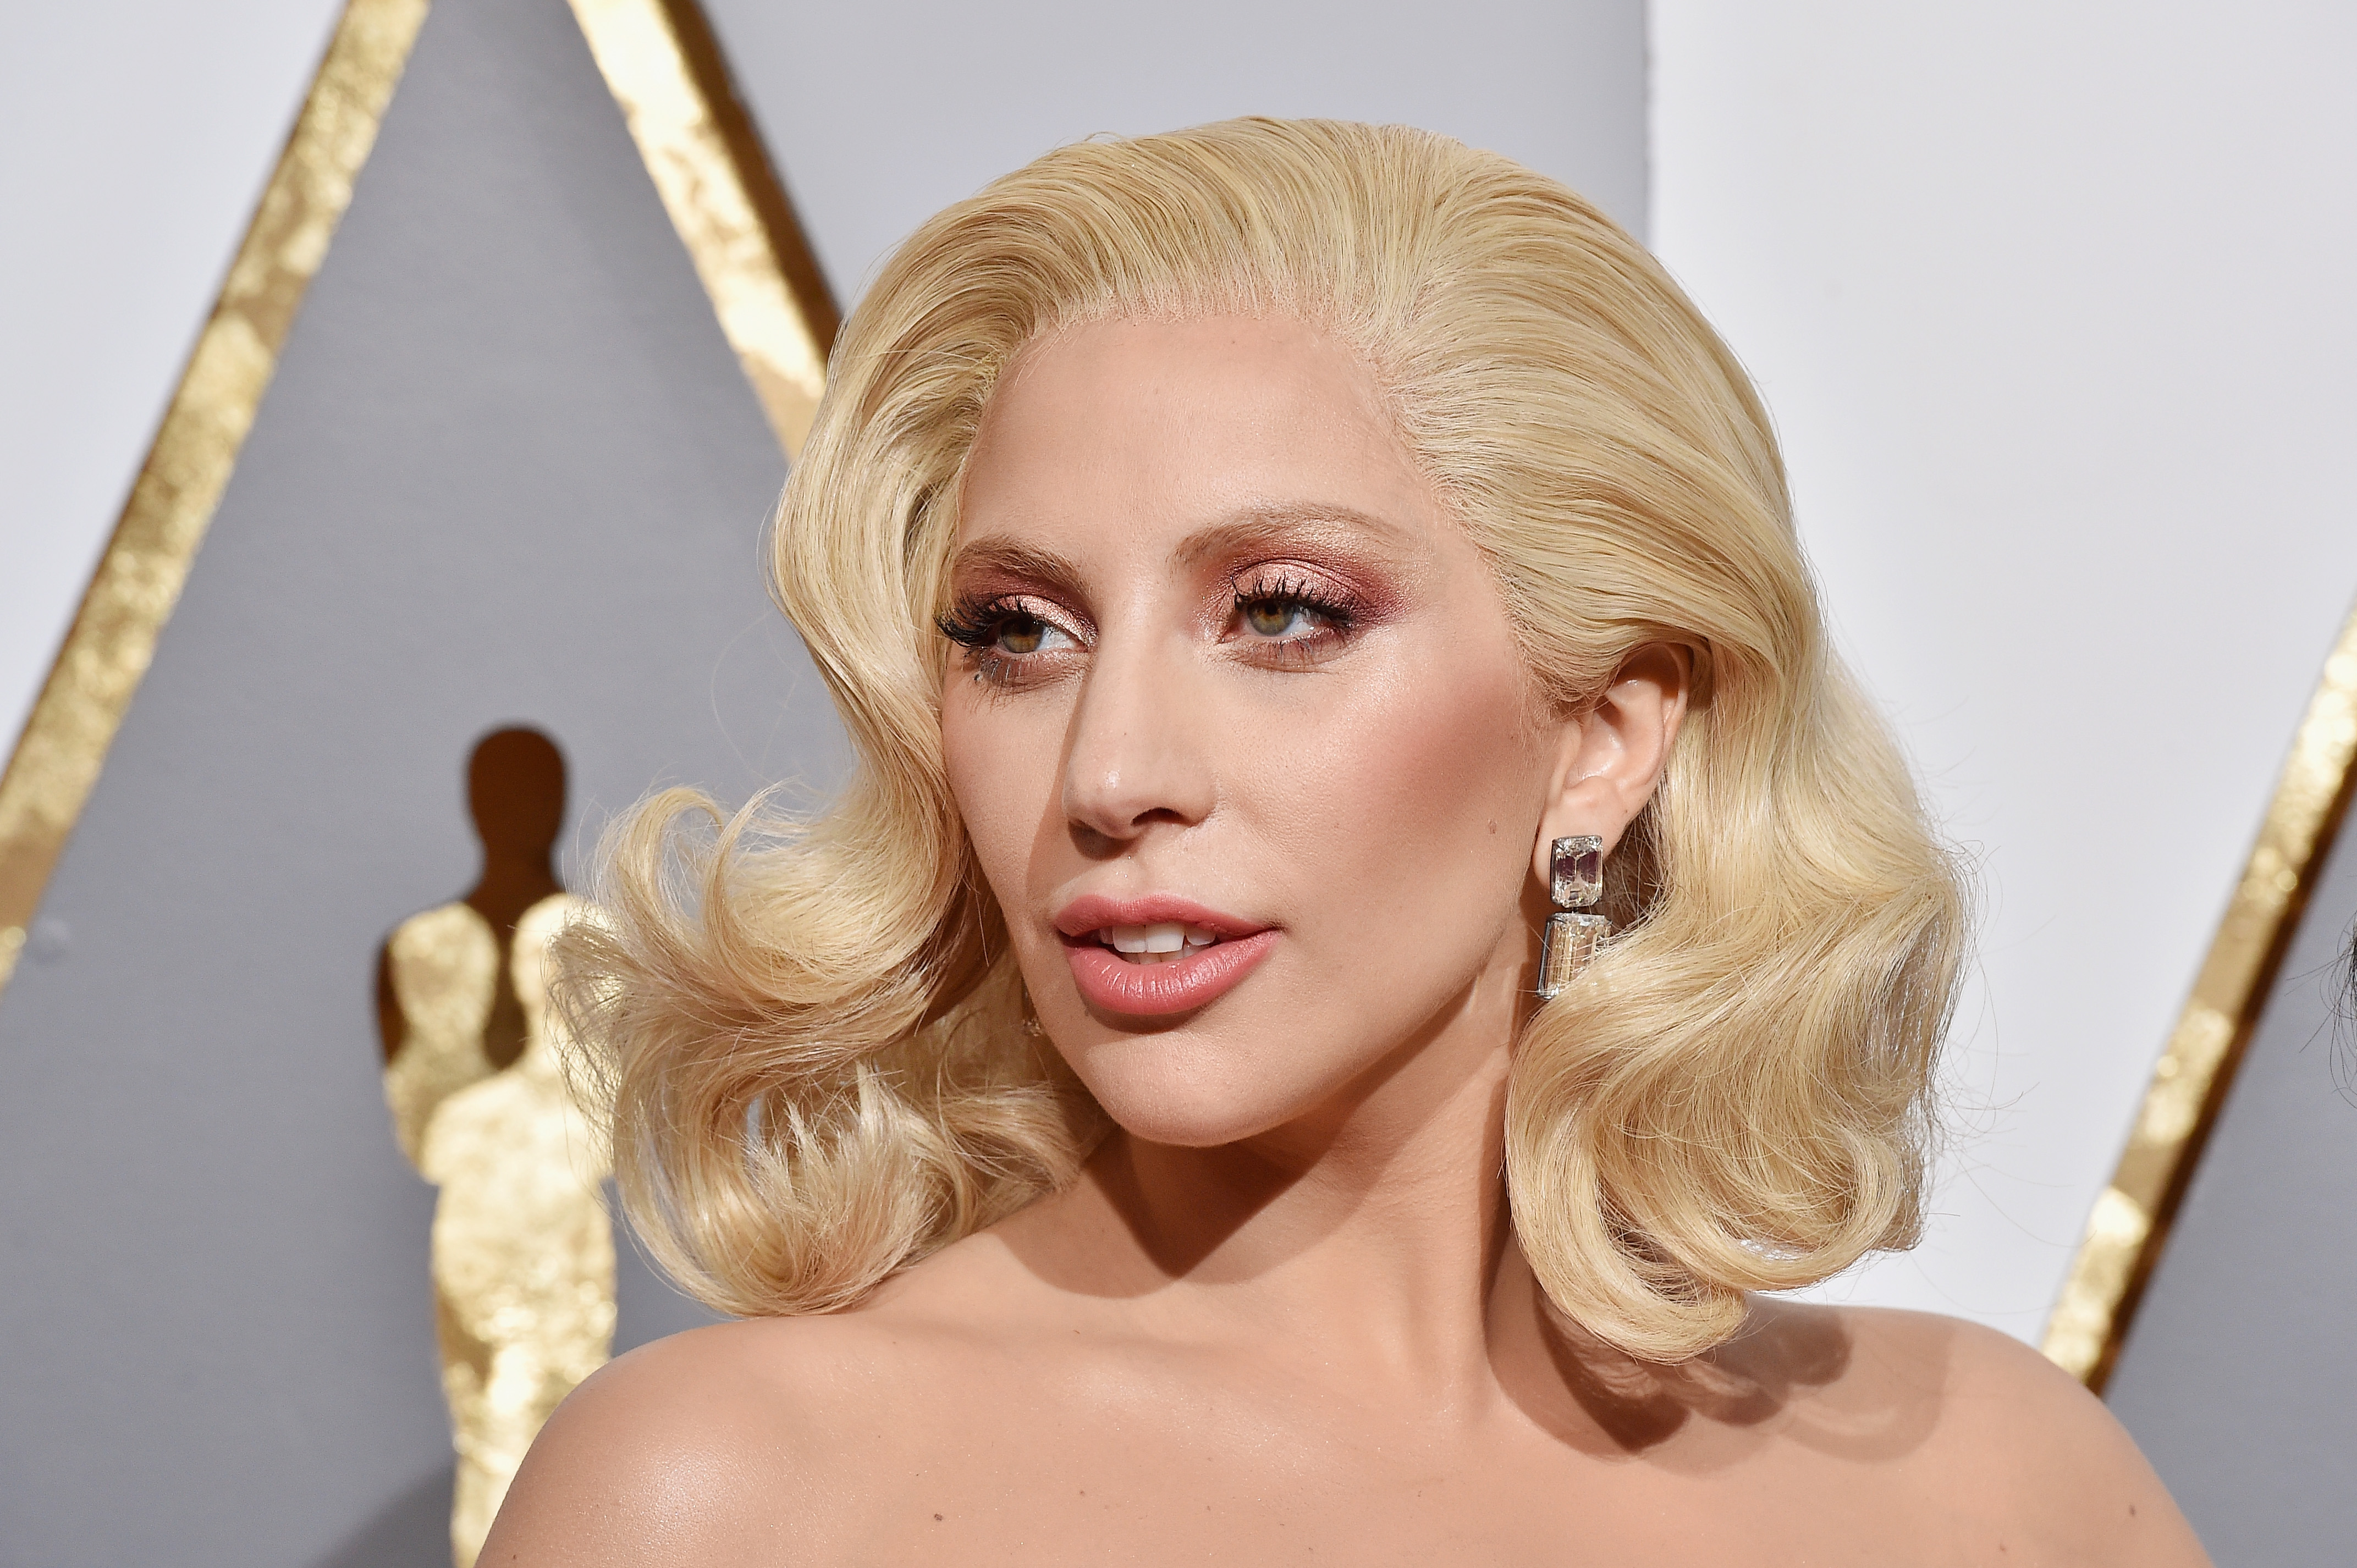 11 Times Lady Gaga Ditched the Lipstick and Went Makeup-Free